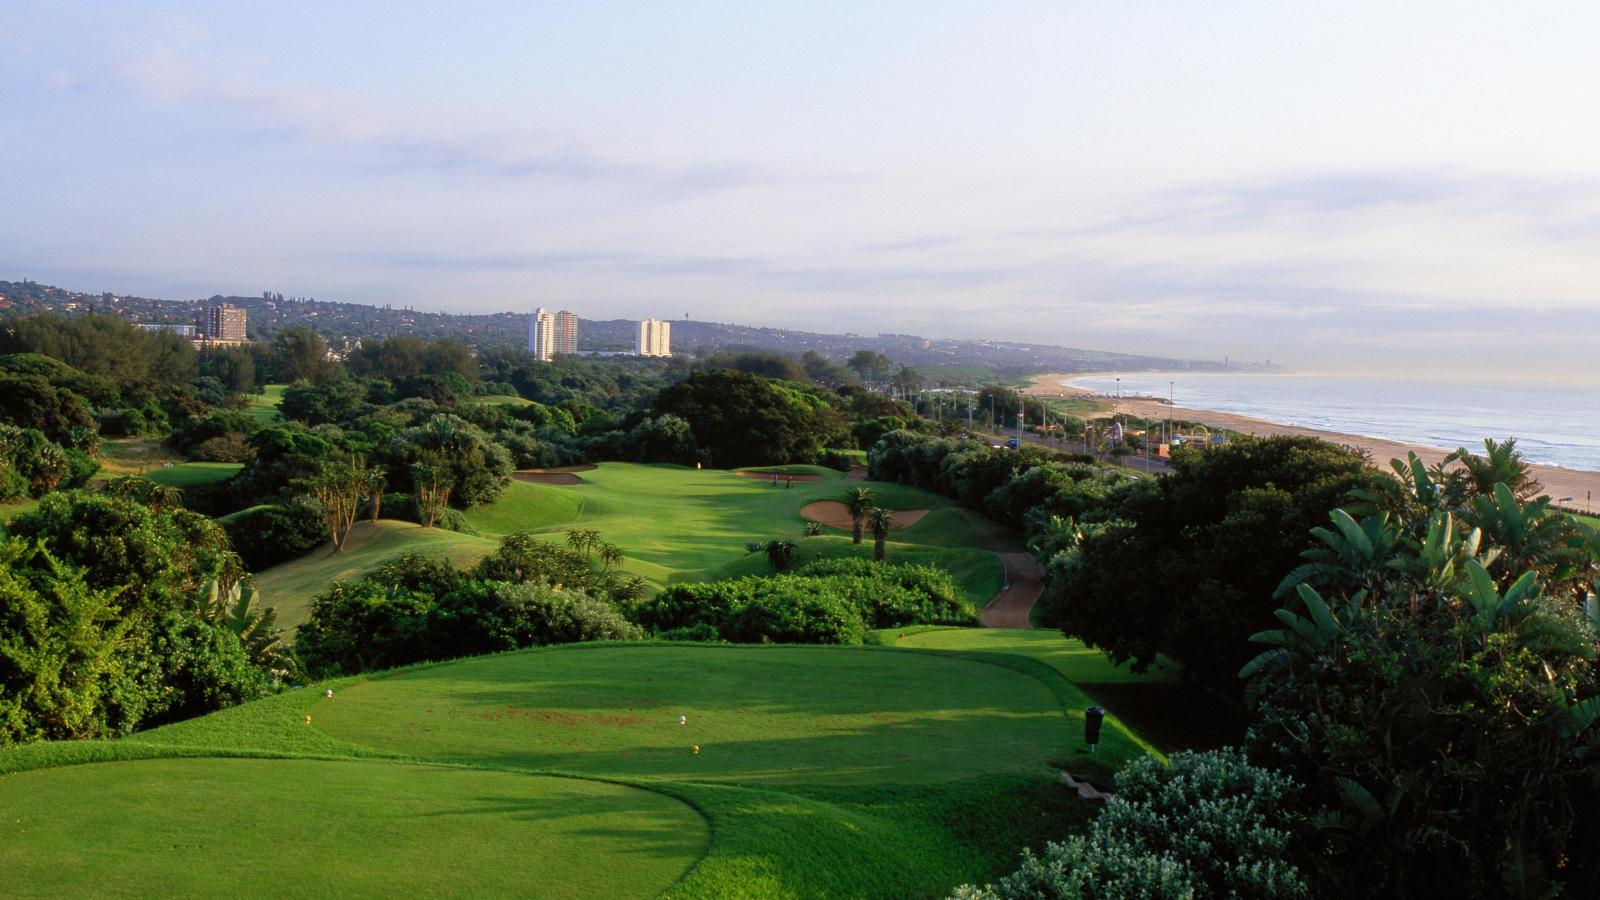 https://bubo.sk/uploads/galleries/7526/durban-country-club-5-xl.jpg